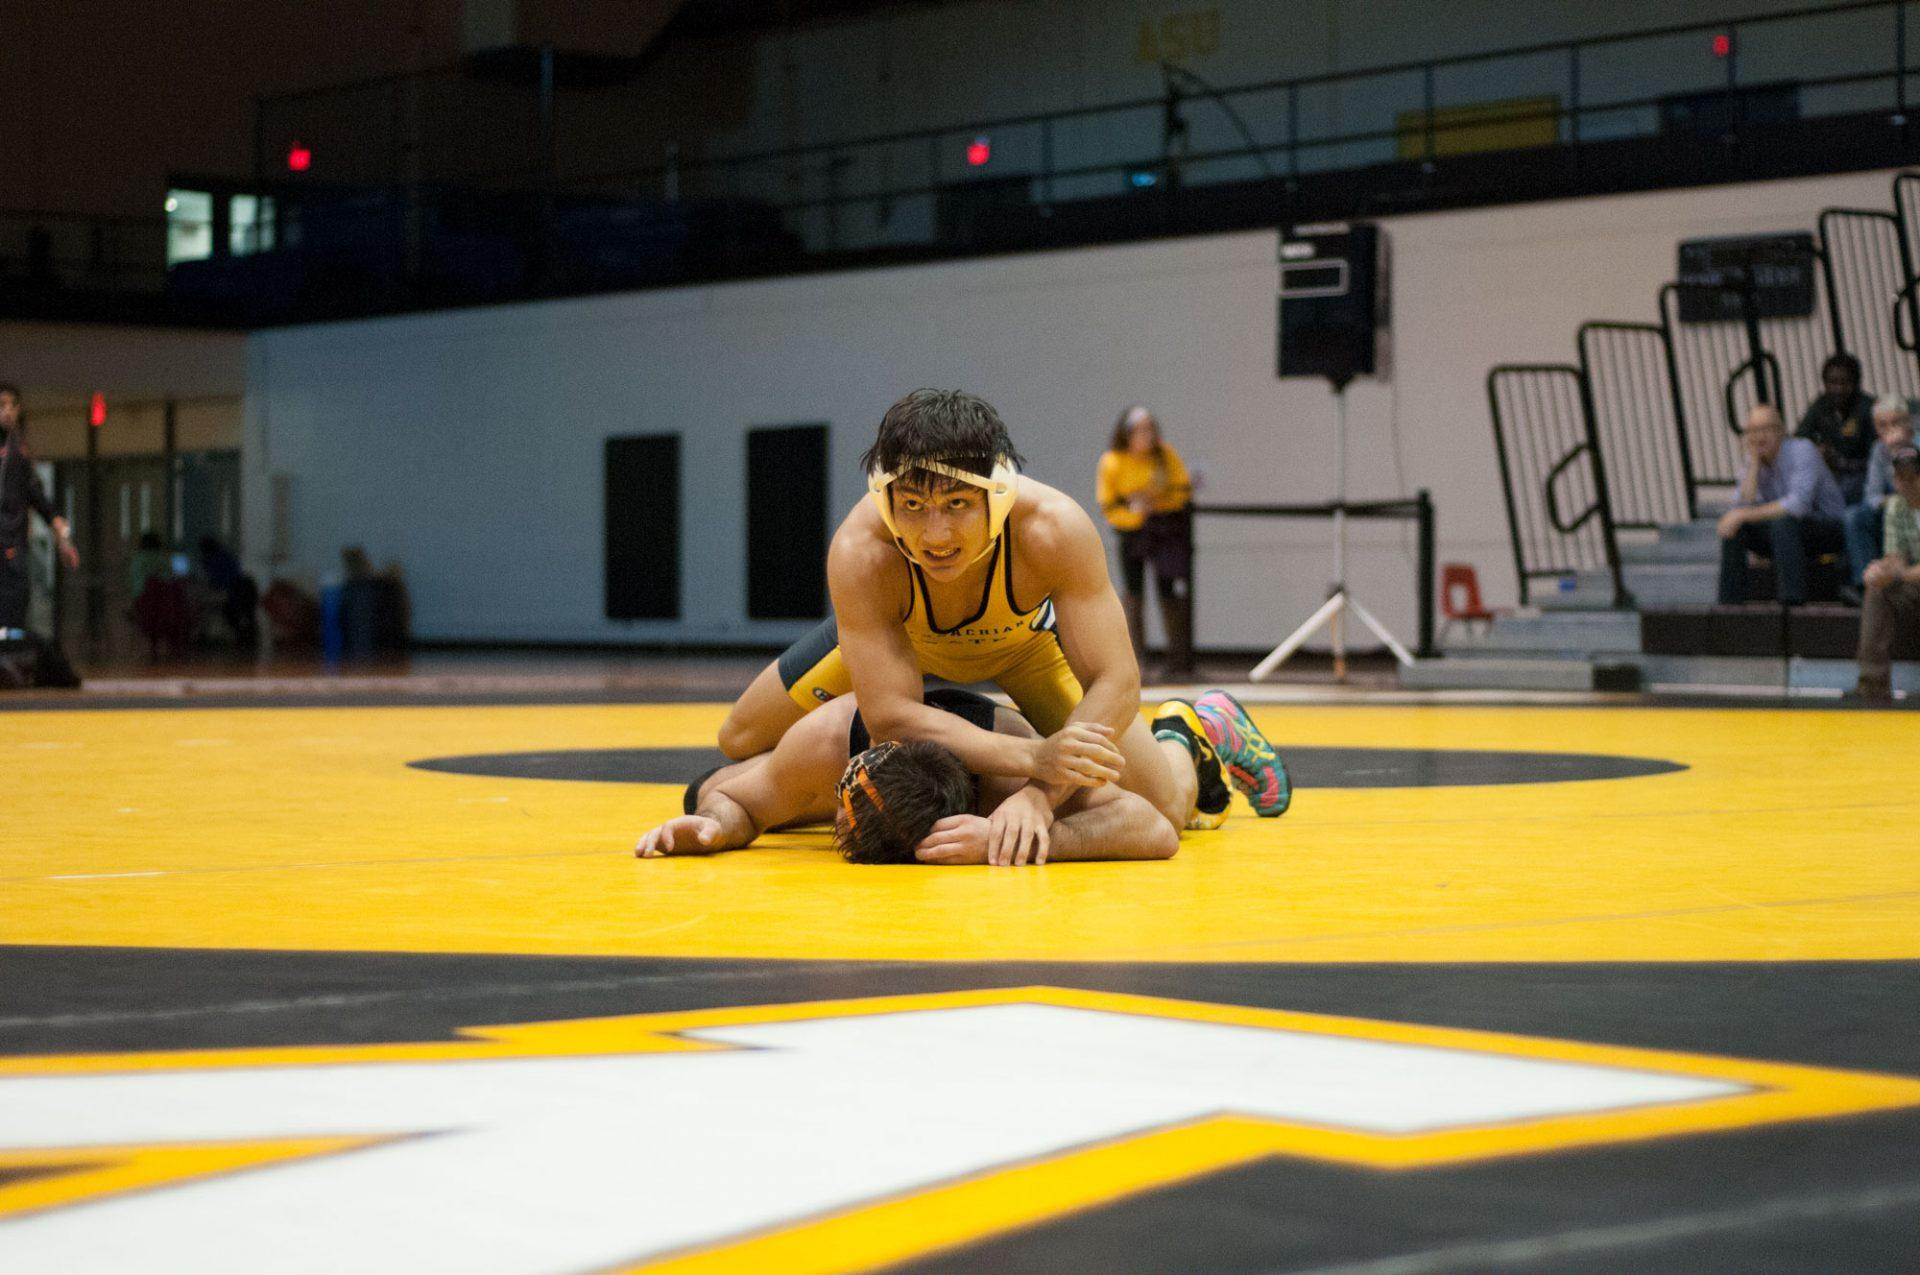 March Matness ends for the Mountaineers